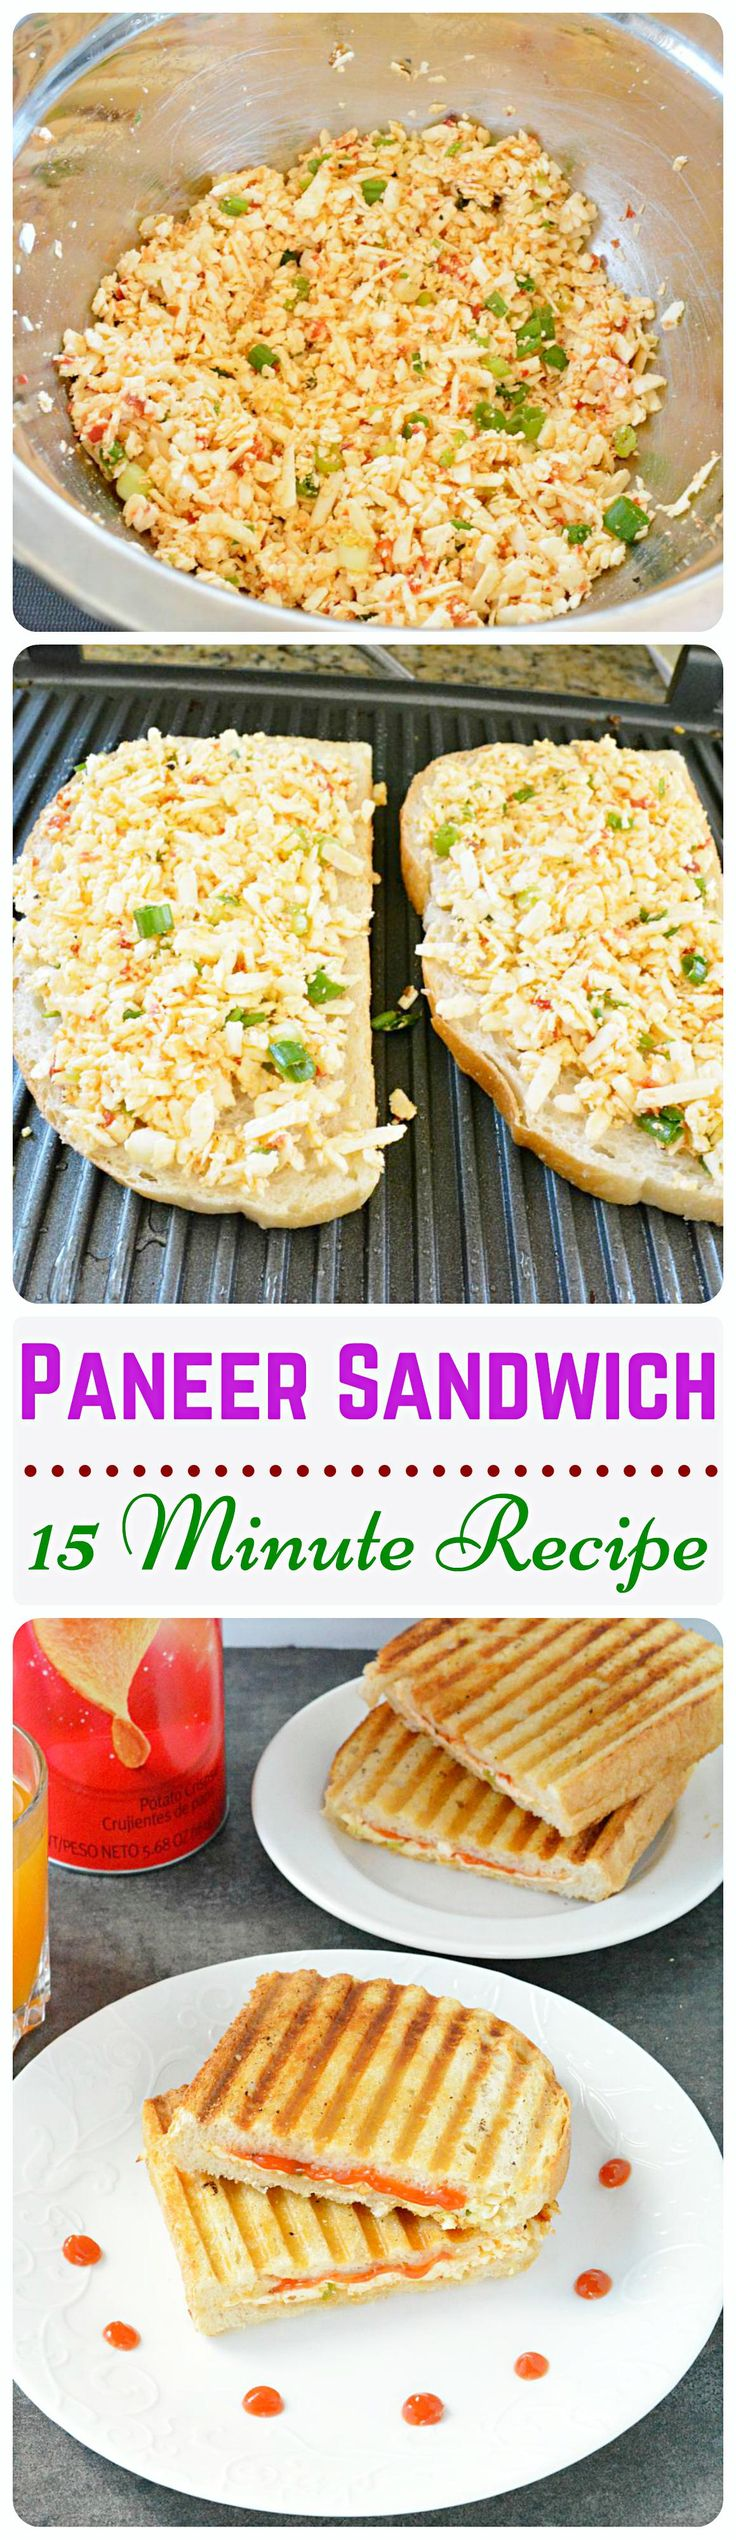 Spicy Paneer Sandwich - This spicy and flavorful sandwich is stuffed with homemade ‪#‎paneer‬ and spicy sauce. Paneer can be substituted with TOFU.